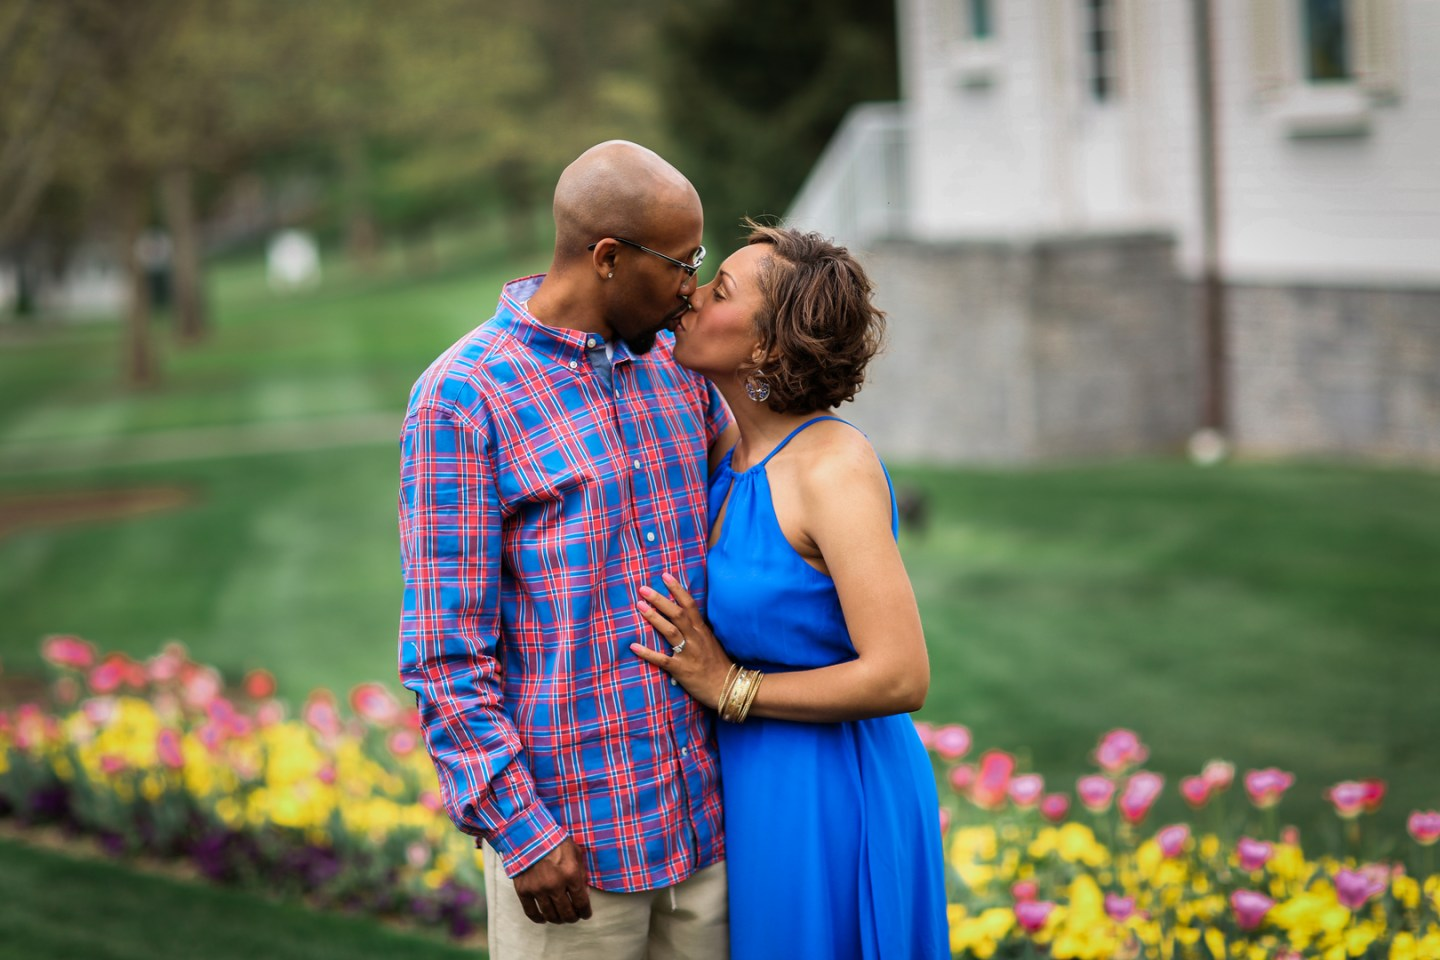 ib61gqs32c5hmxqgsi64_big West Virginia Engagement Session at the Greenbriar Resort